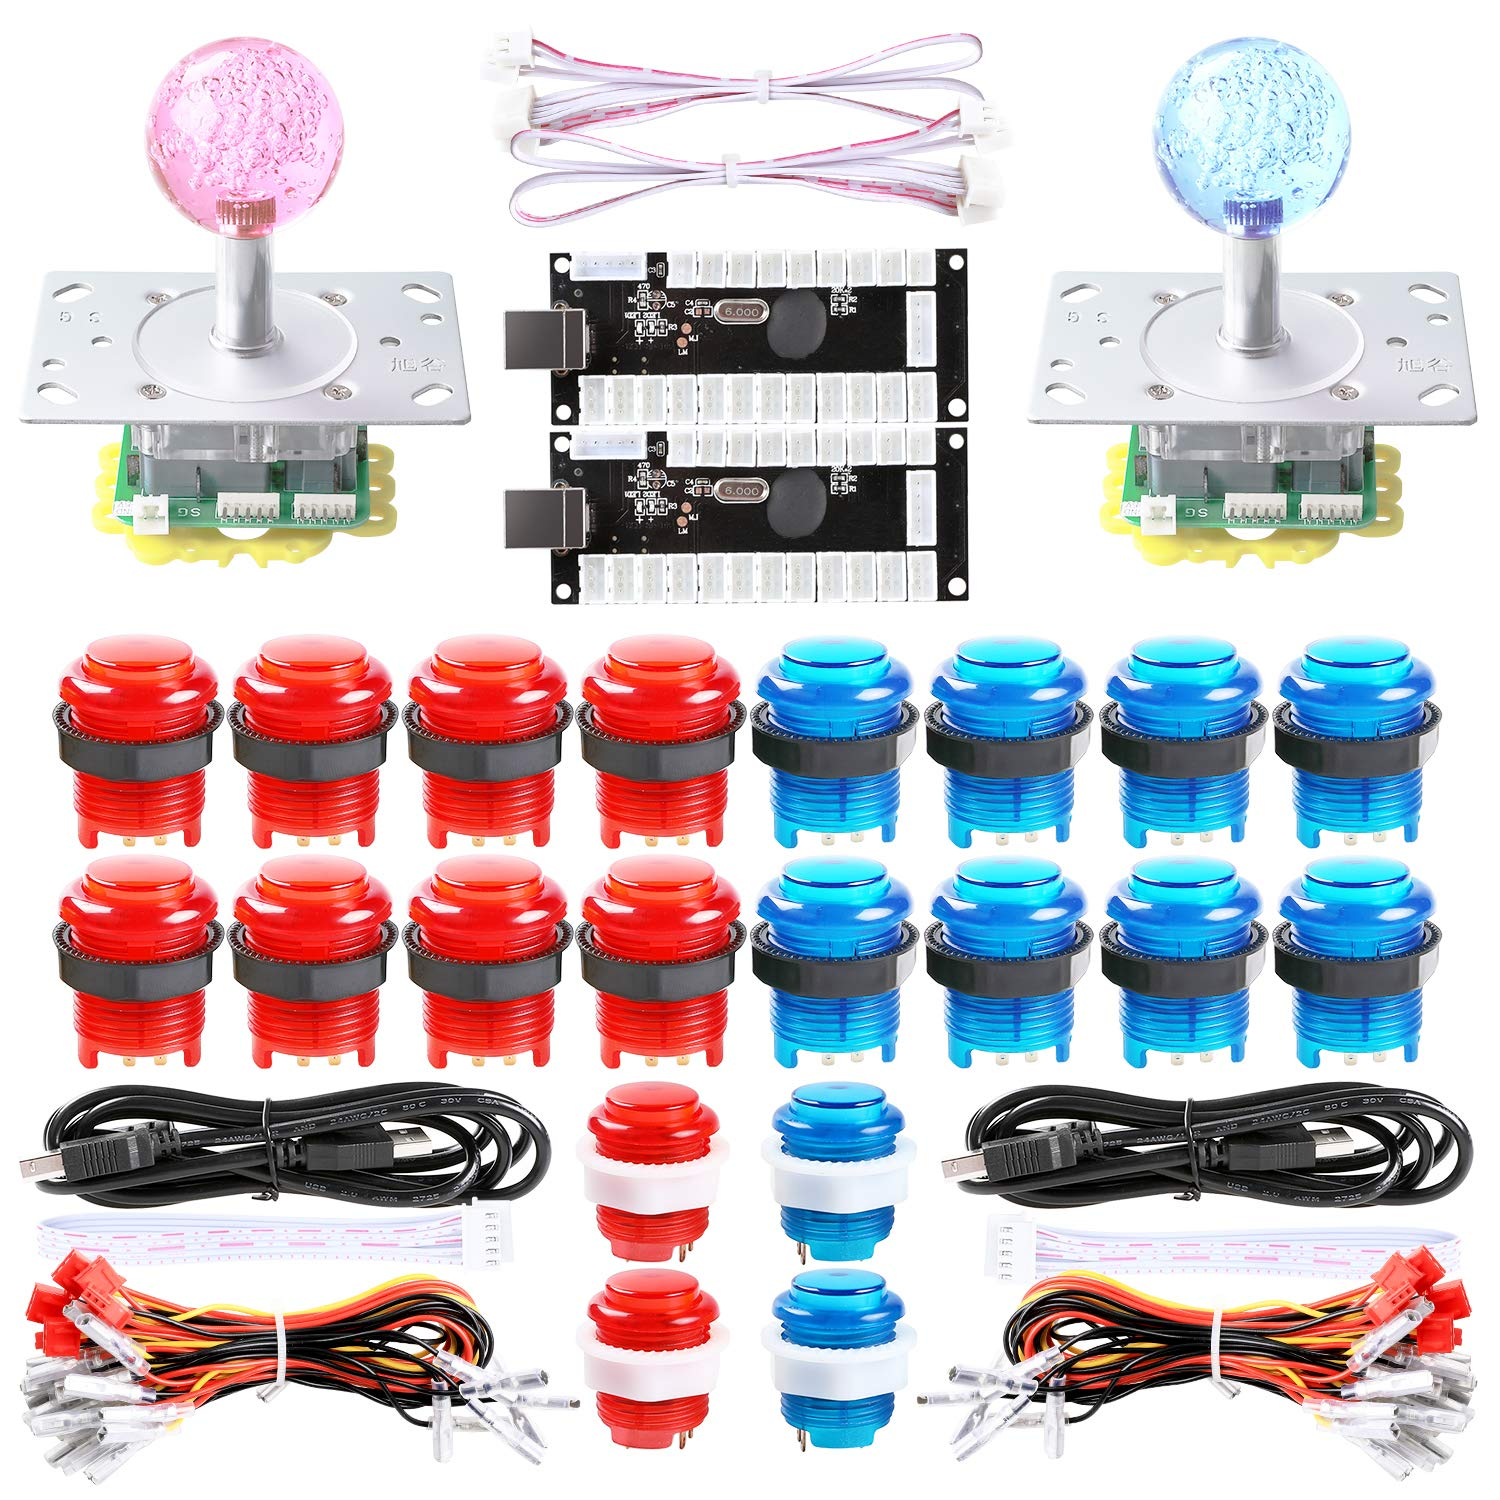 Kit Arcade Joystick Para 2 Jugadores Pc / Mame / 2x Led Usb